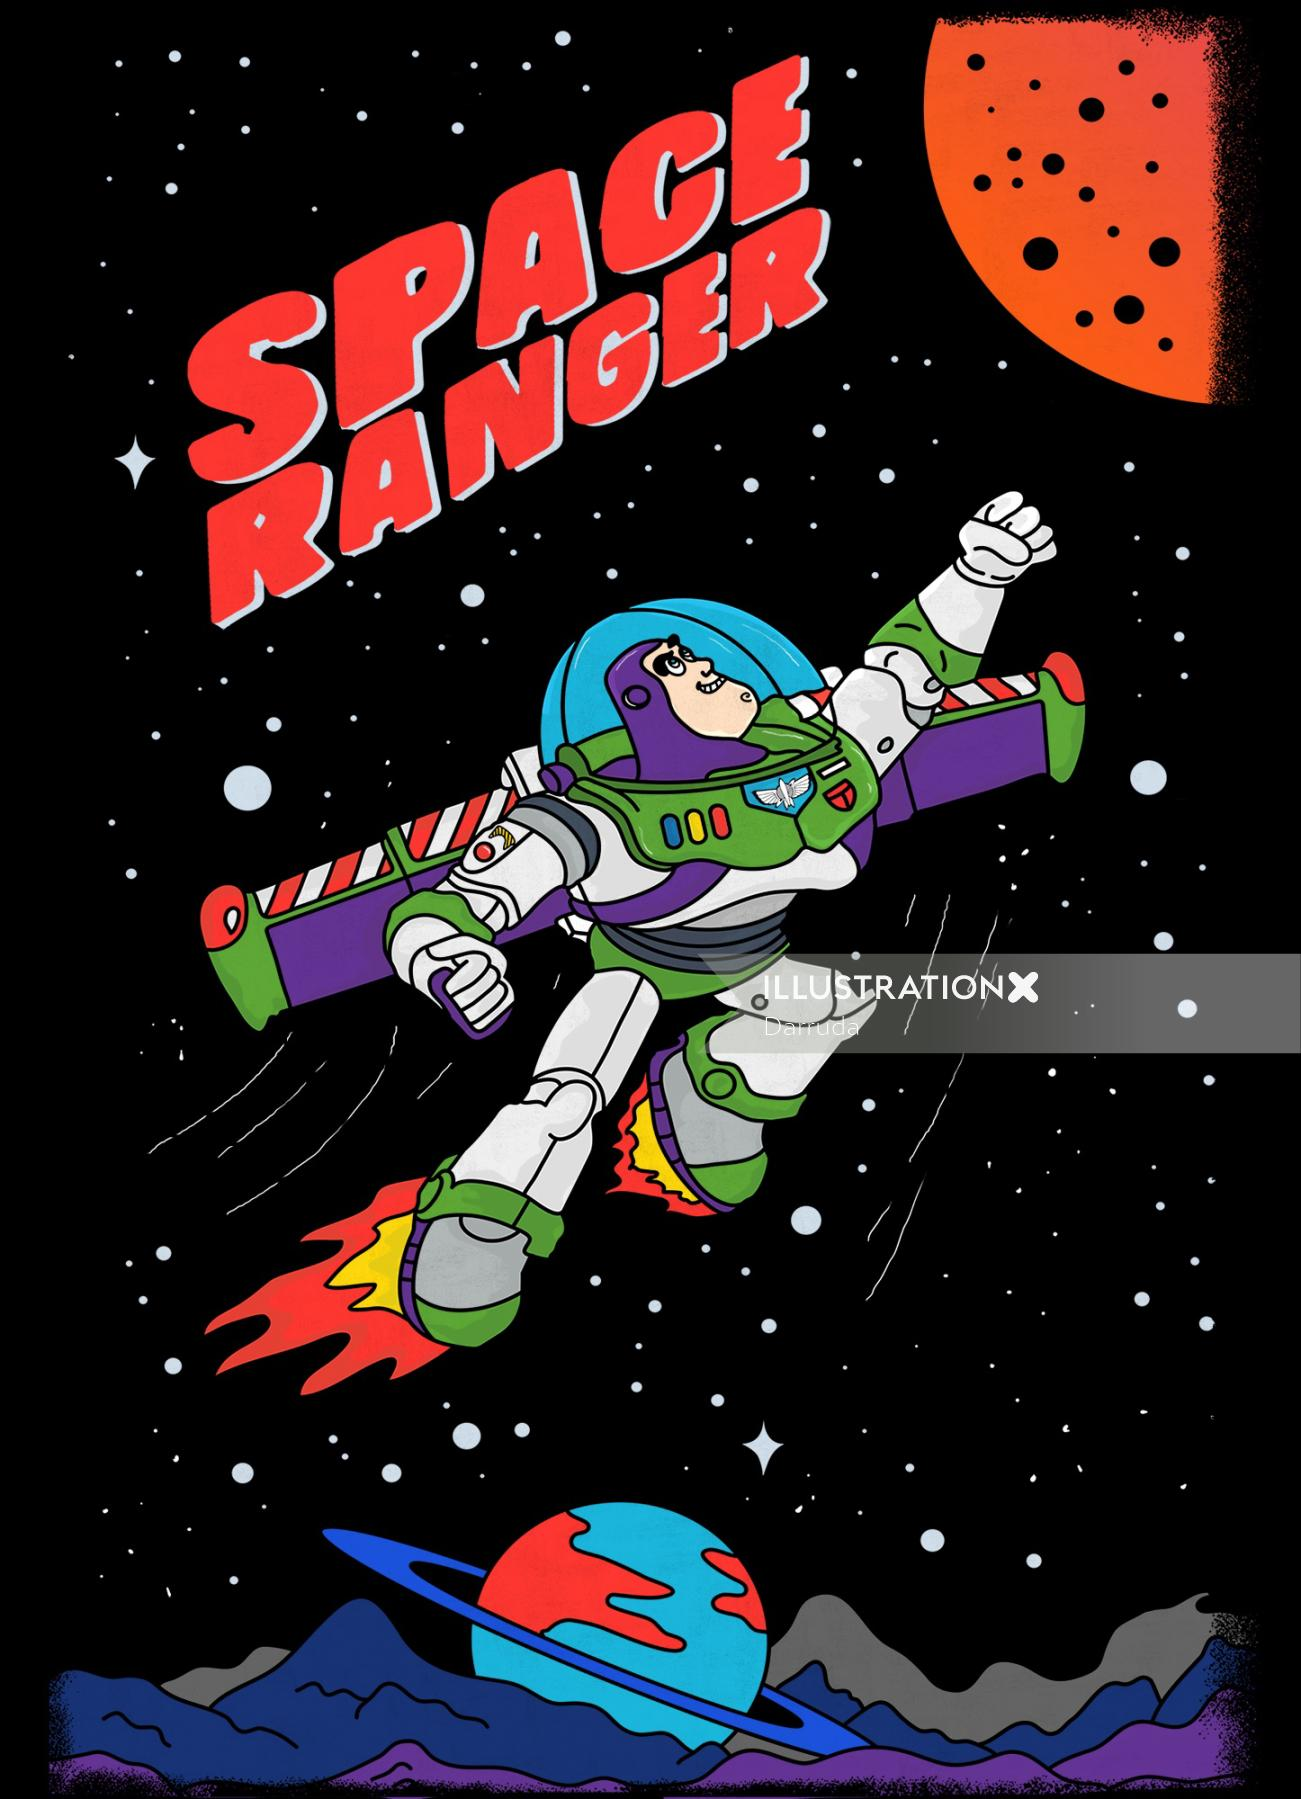 Digital painting of space ranger for t-shirt